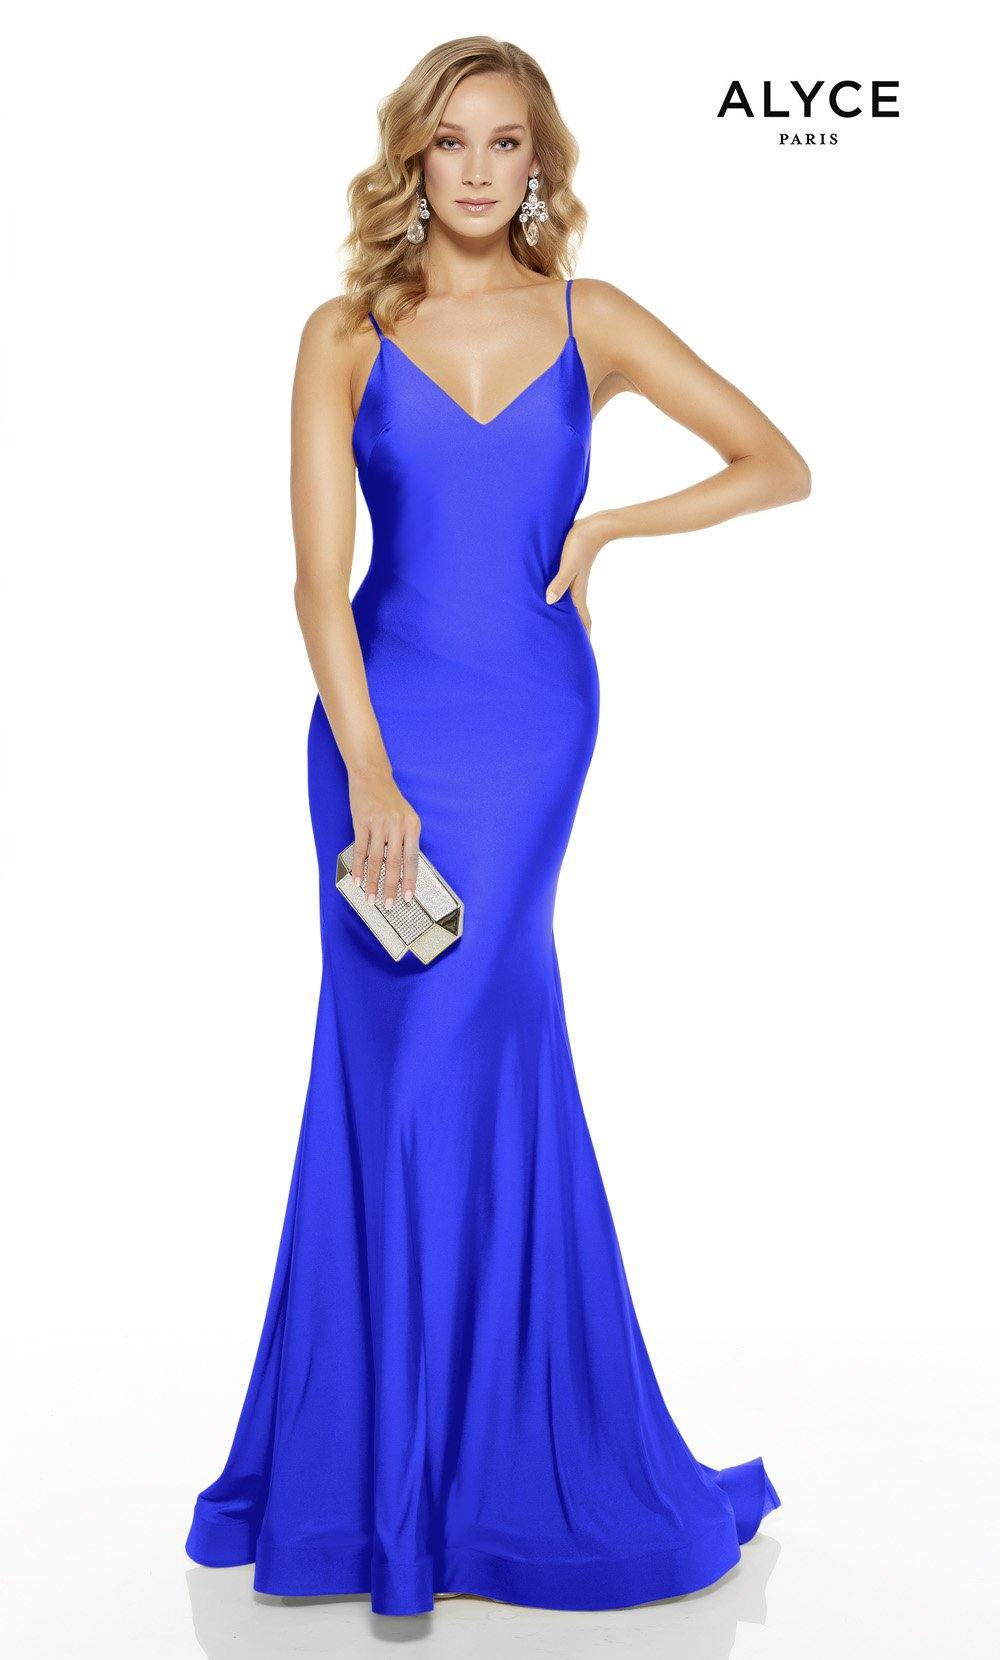 Electric Blue mermaid prom dress with a v-neckline